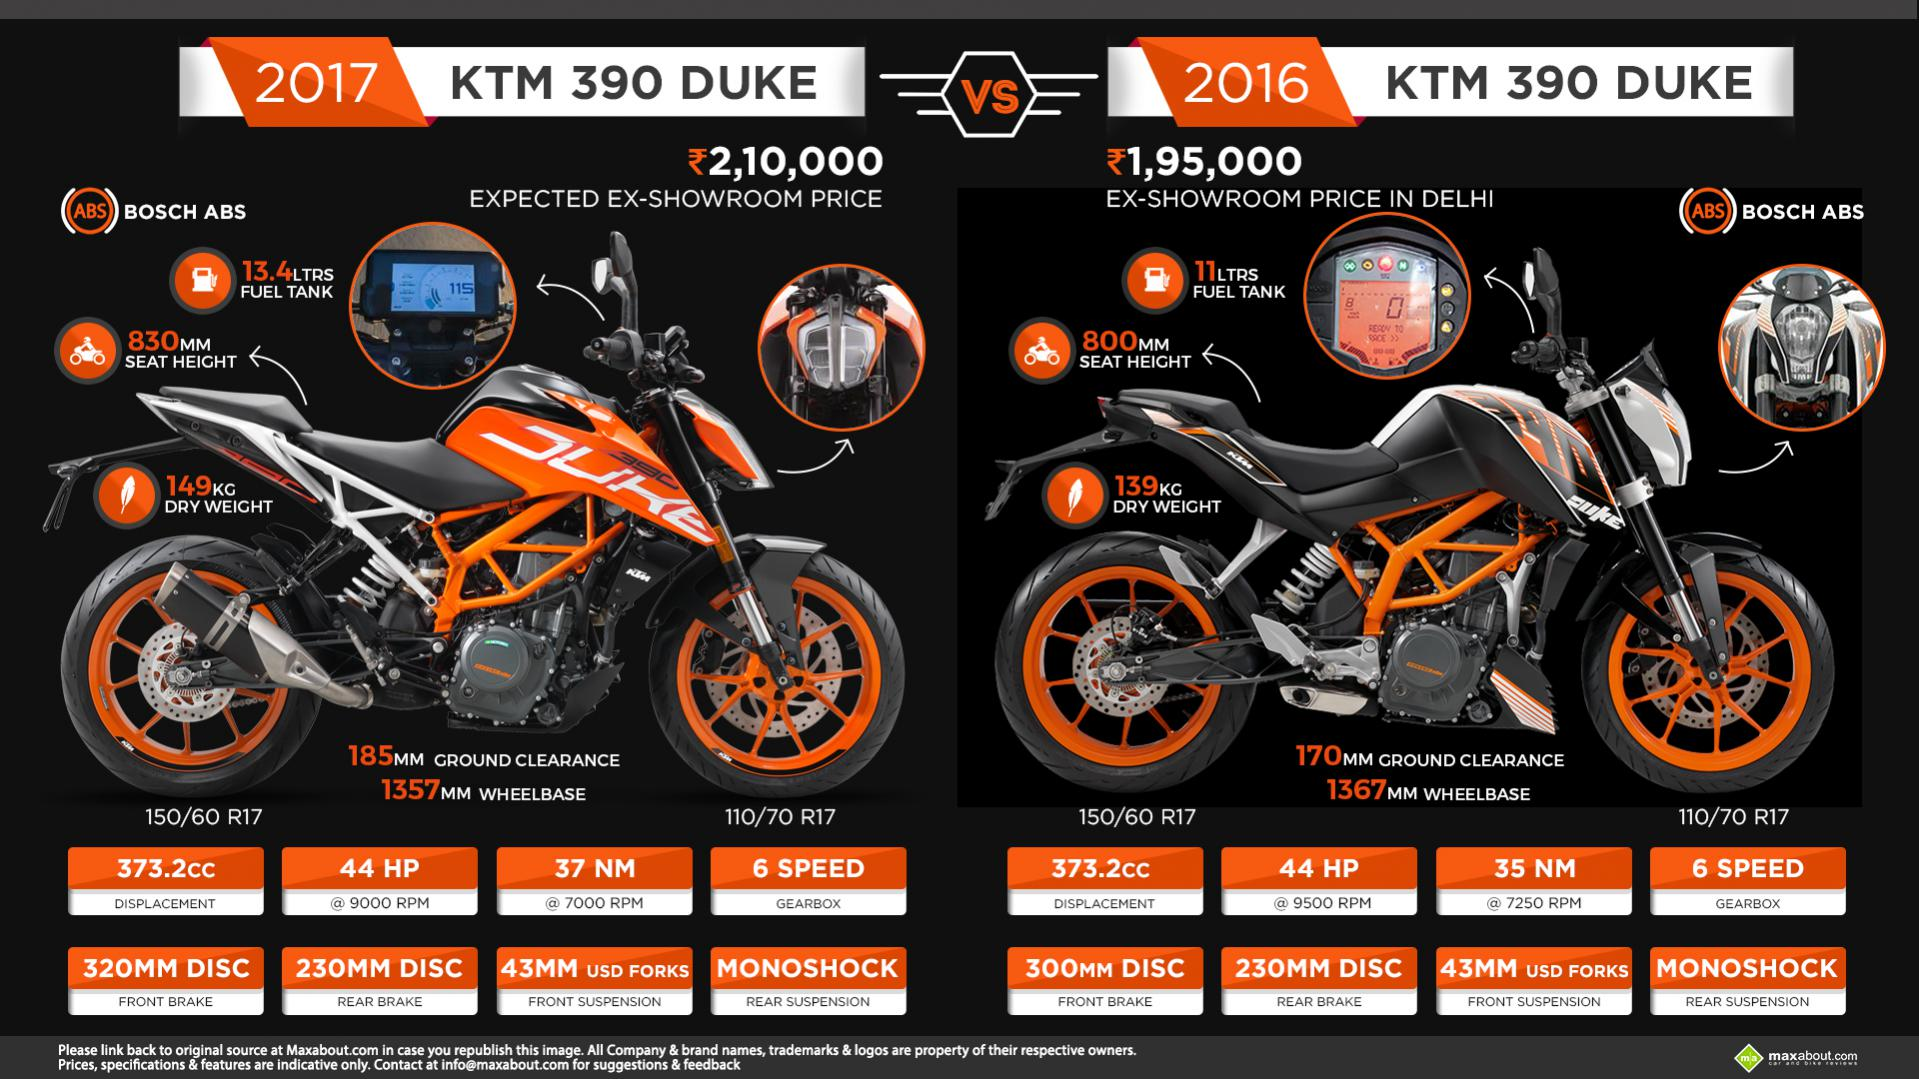 Basic 2016 Vs 2017 Model Comparison Ktm Duke 390 Forum